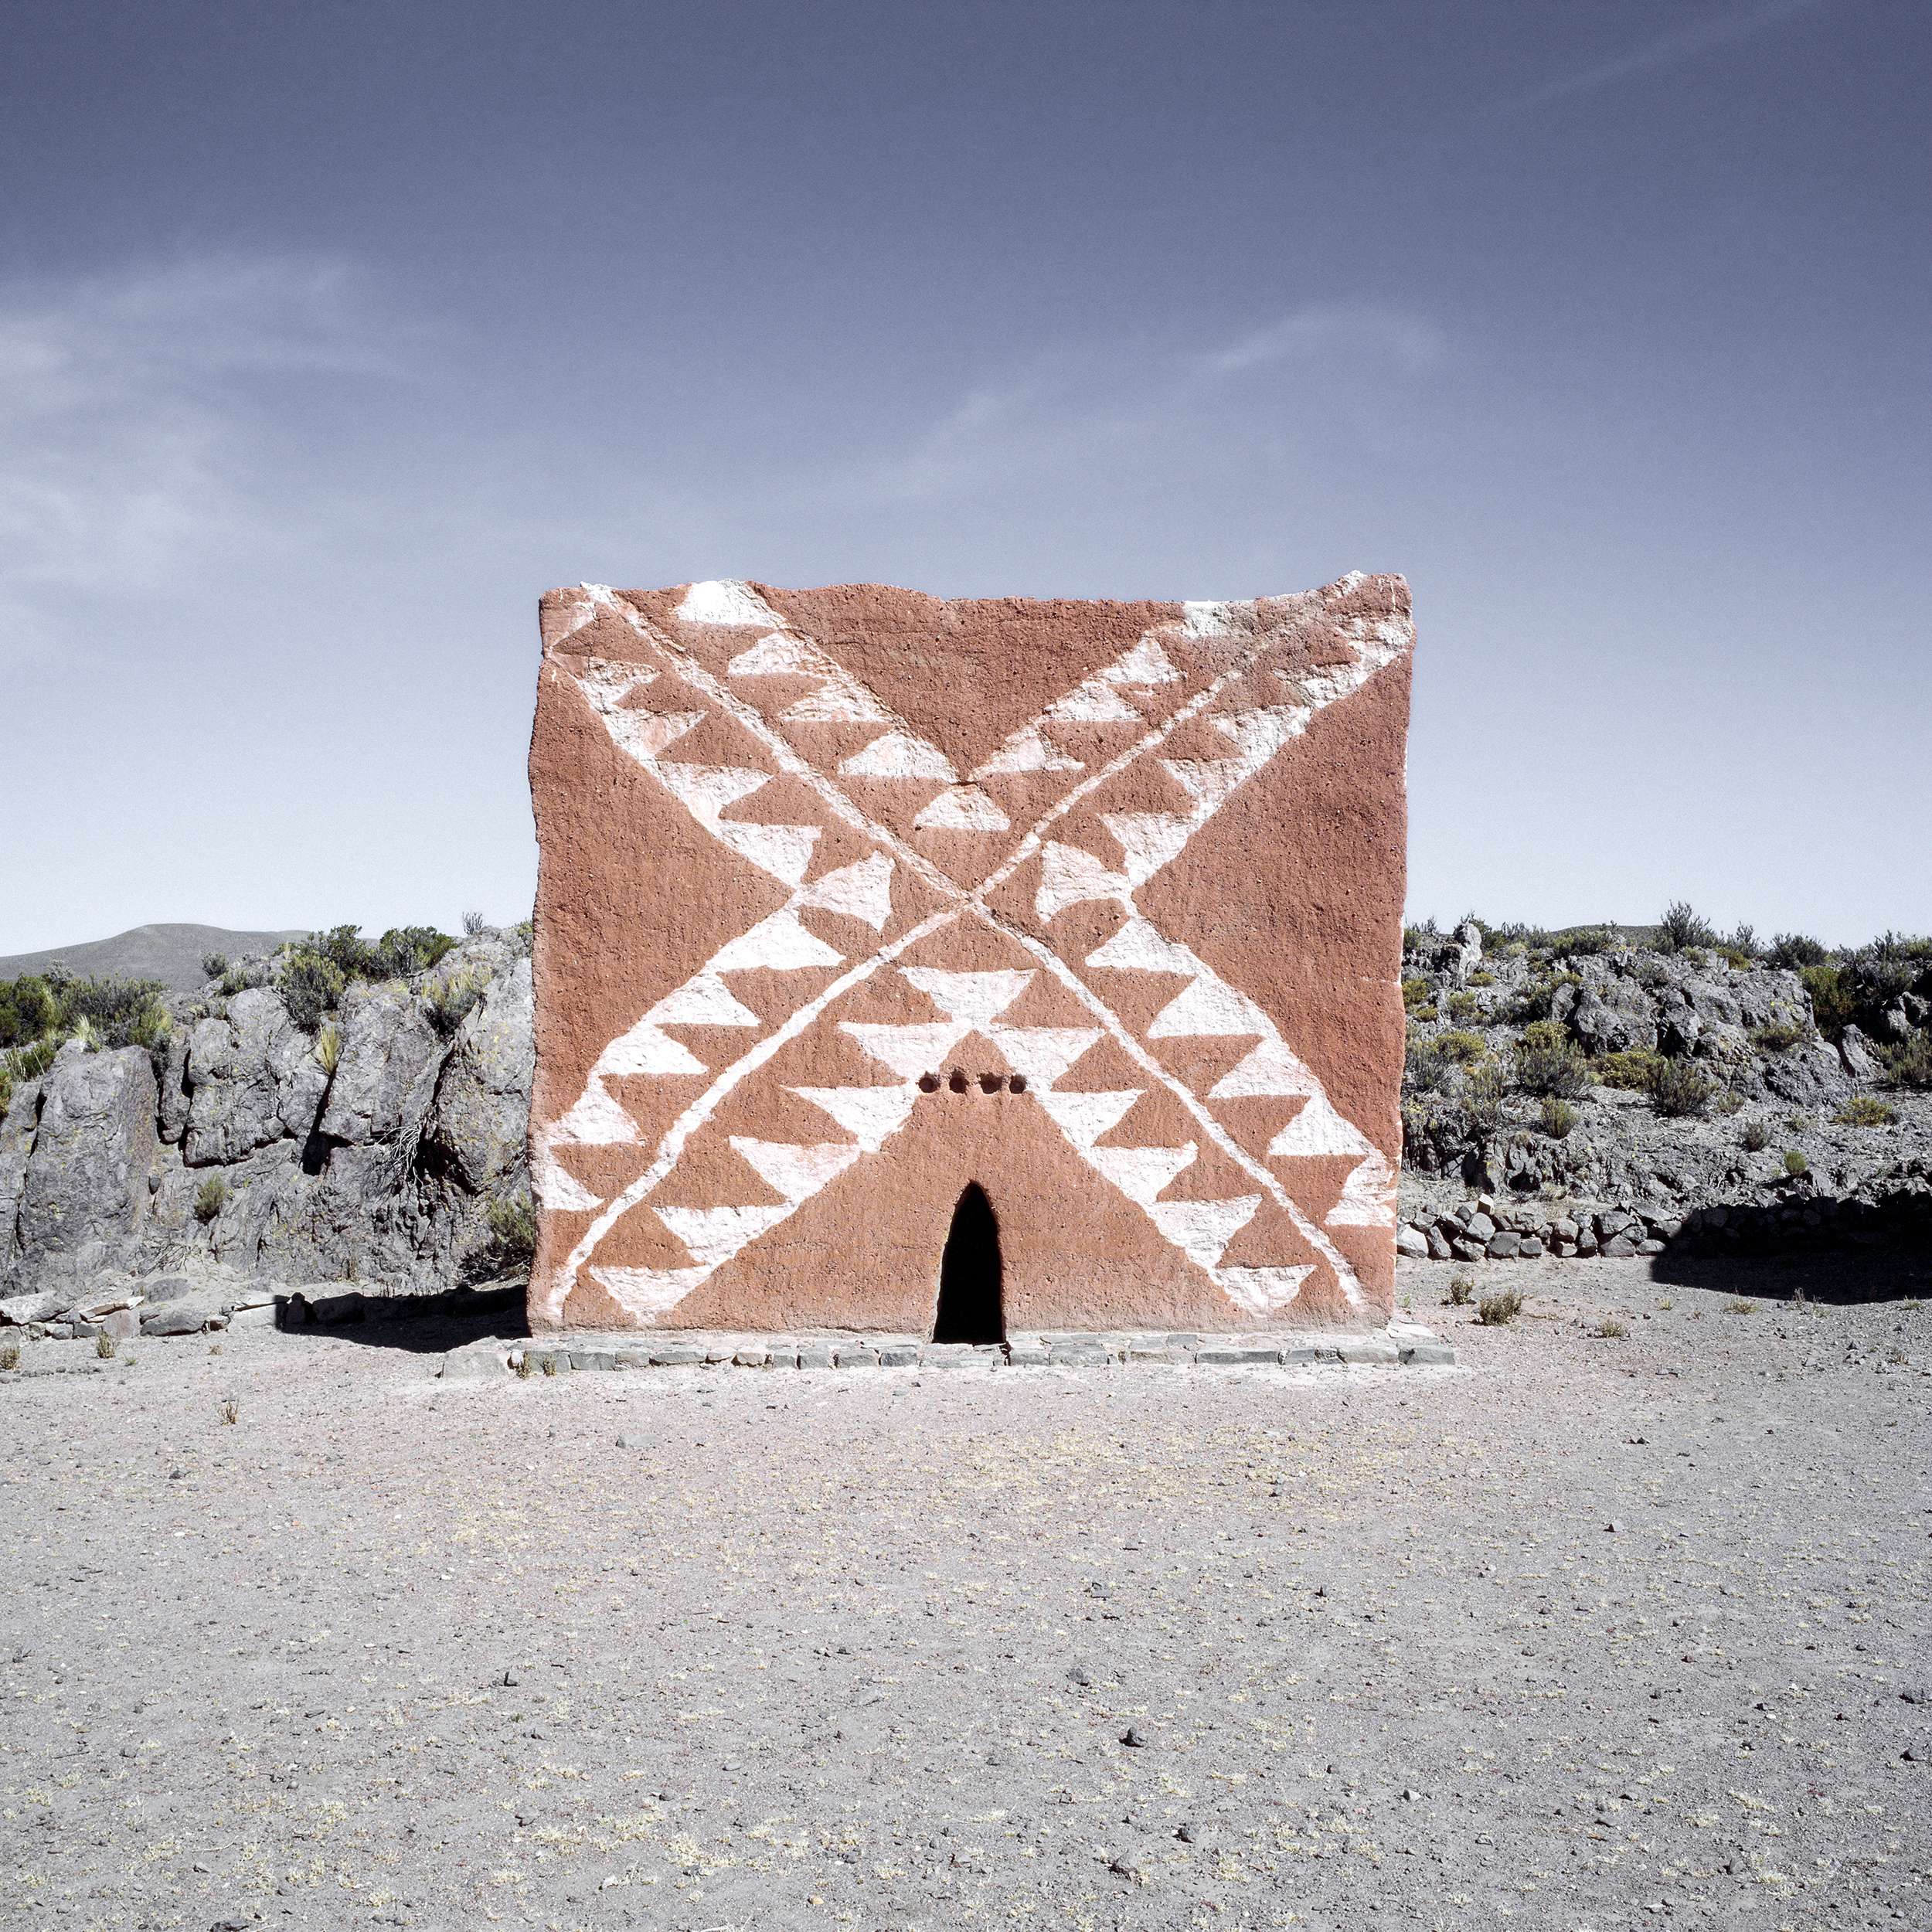 Towards the Reborn Sun       A typology of the ancient Aymara funeral towers originally built for nobles and their families. Found across the Altiplano in Peru and Bolivia, all of the chullpas have small openings facing east, towards the rising sun.